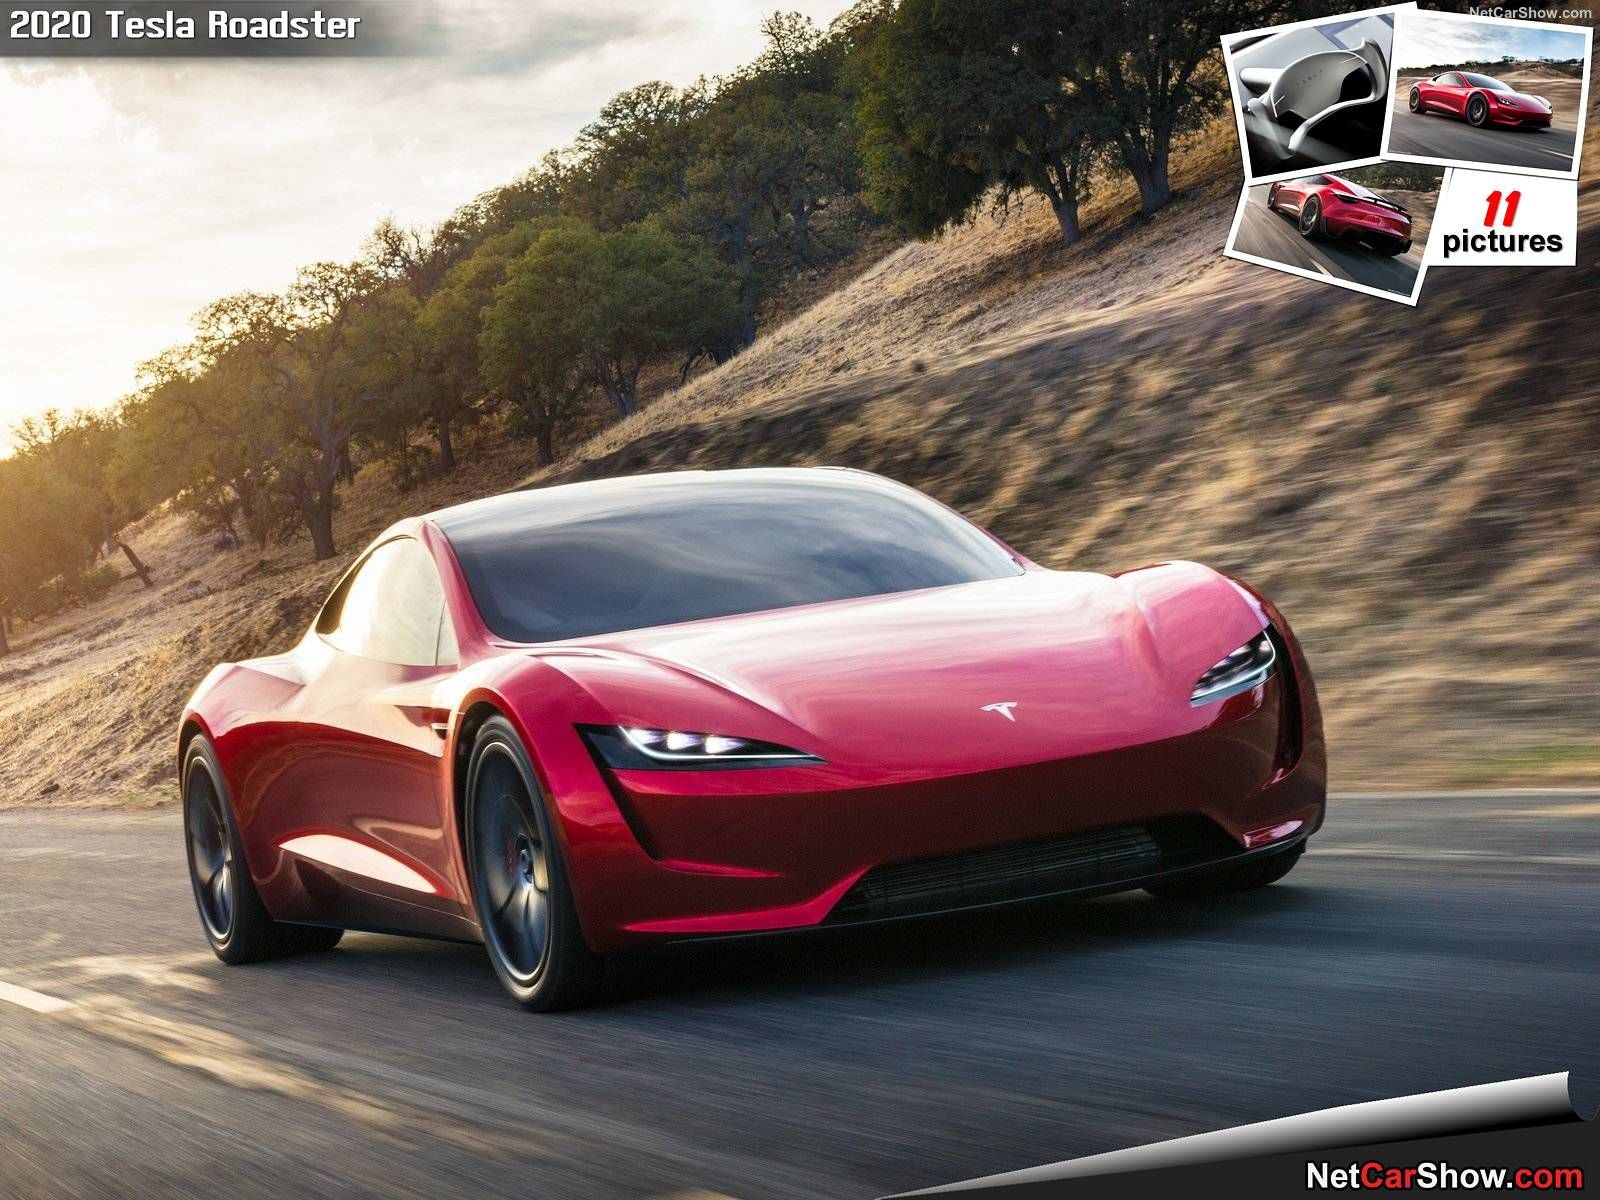 Wallpaper HD Tesla Roadster 2020 2021 Live Wallpaper HD Tesla 1600x1200